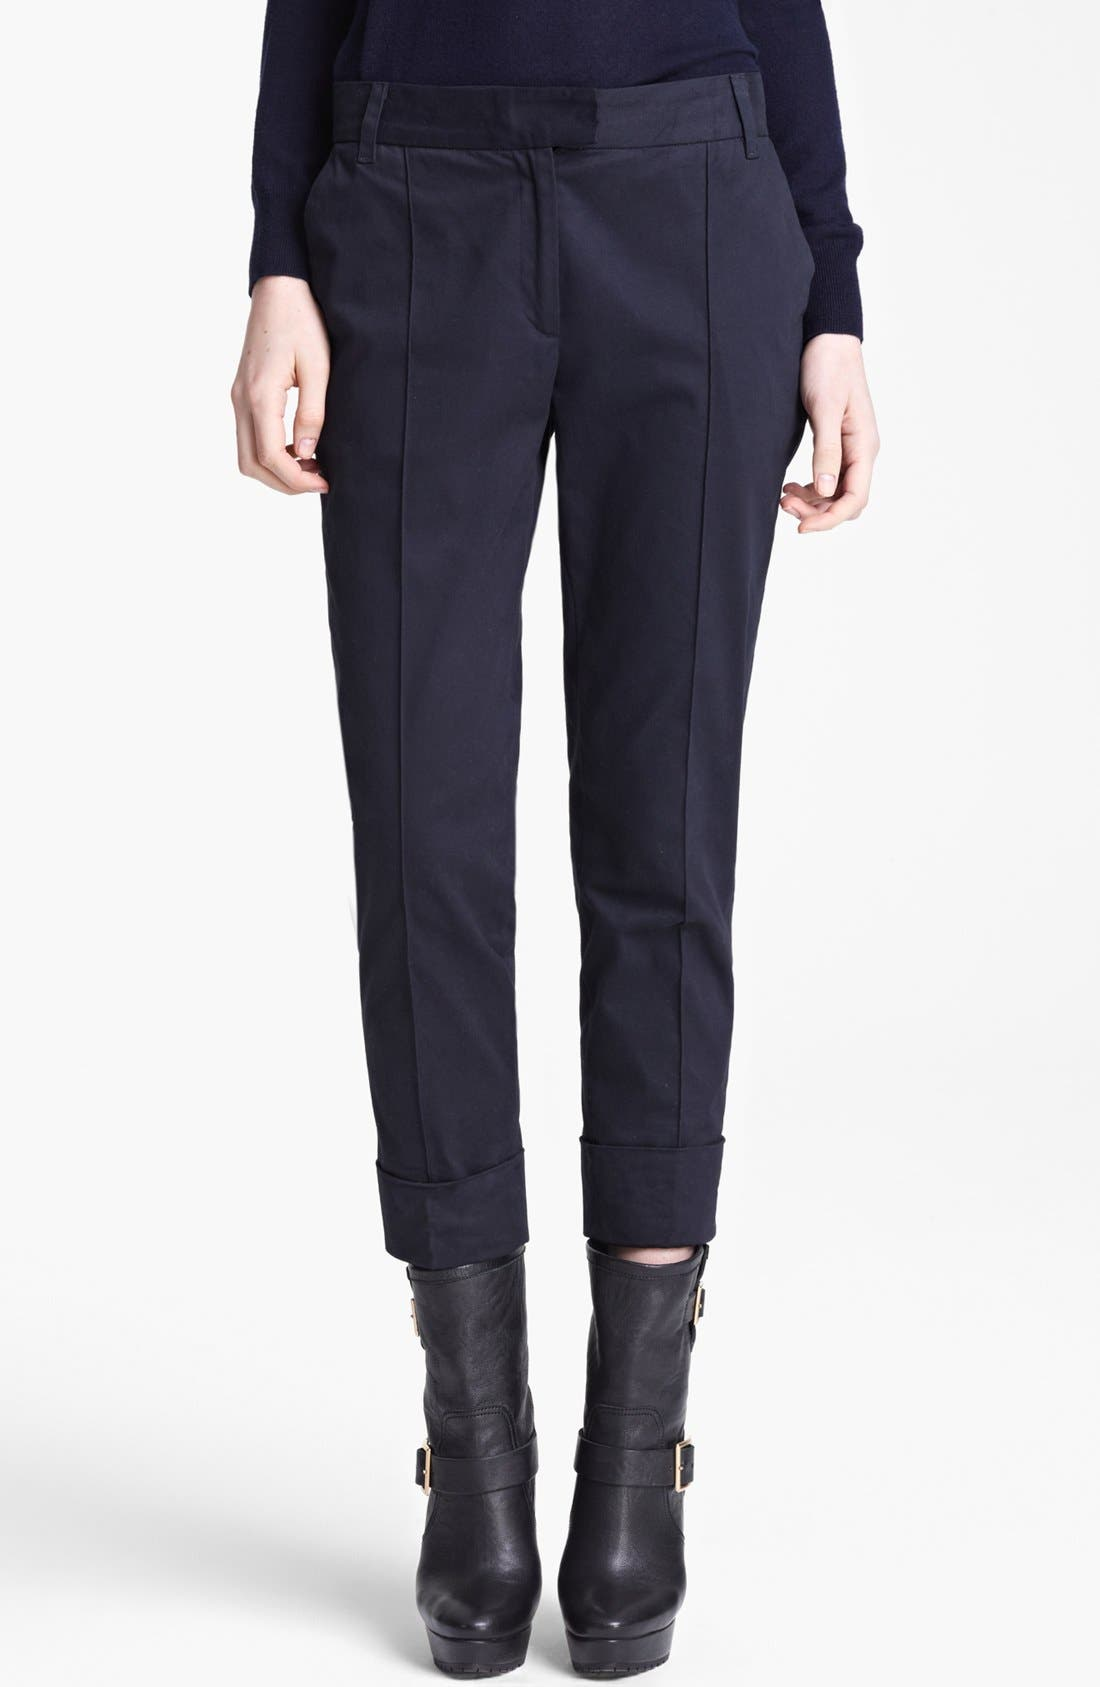 Main Image - Band of Outsiders Stretch Sateen Capri Pants